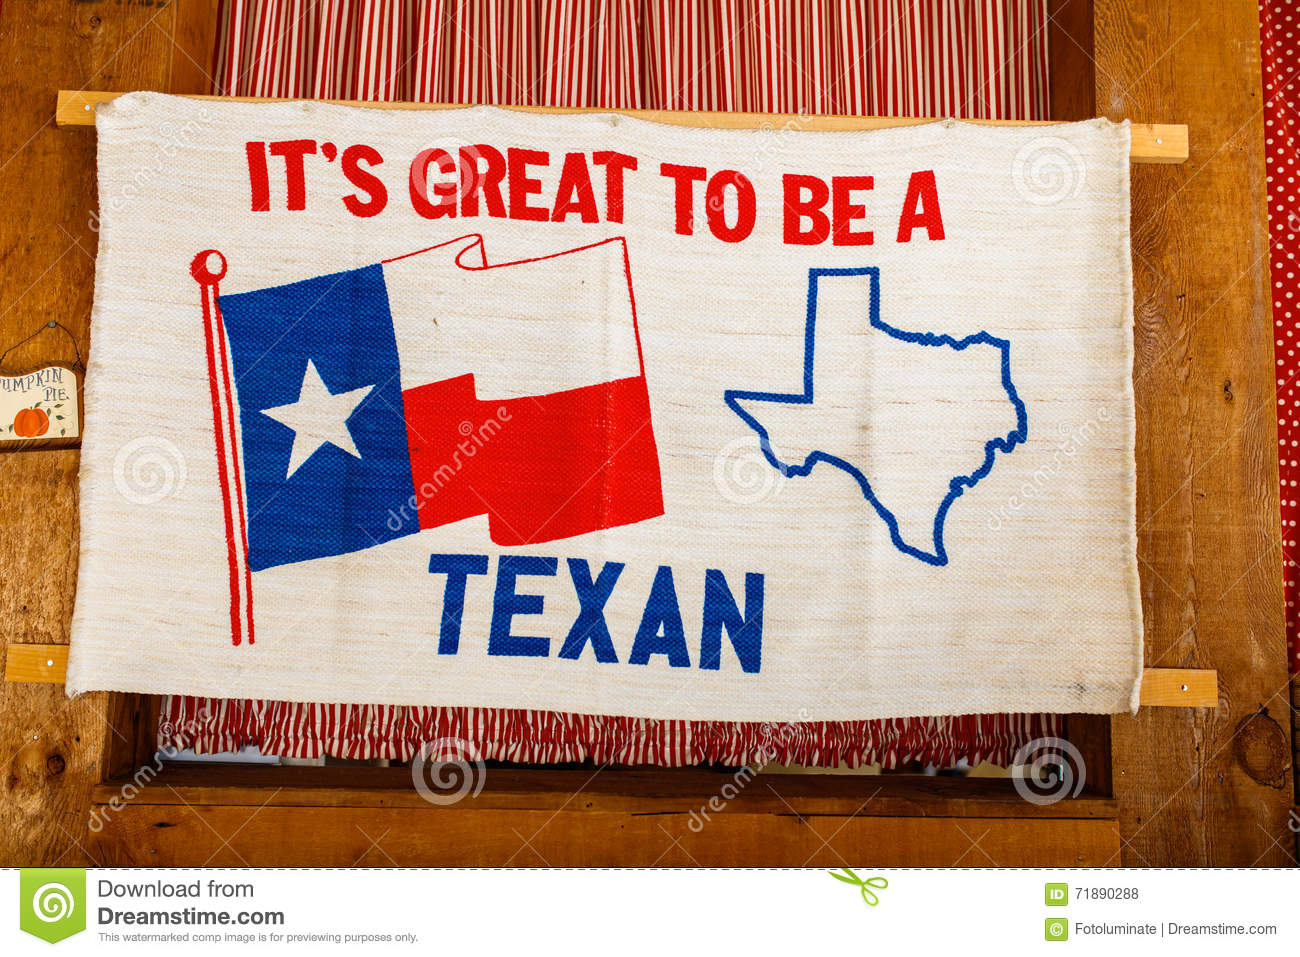 Texas Pride Sign stock photo. Image of flag, great, cloth - 71890288